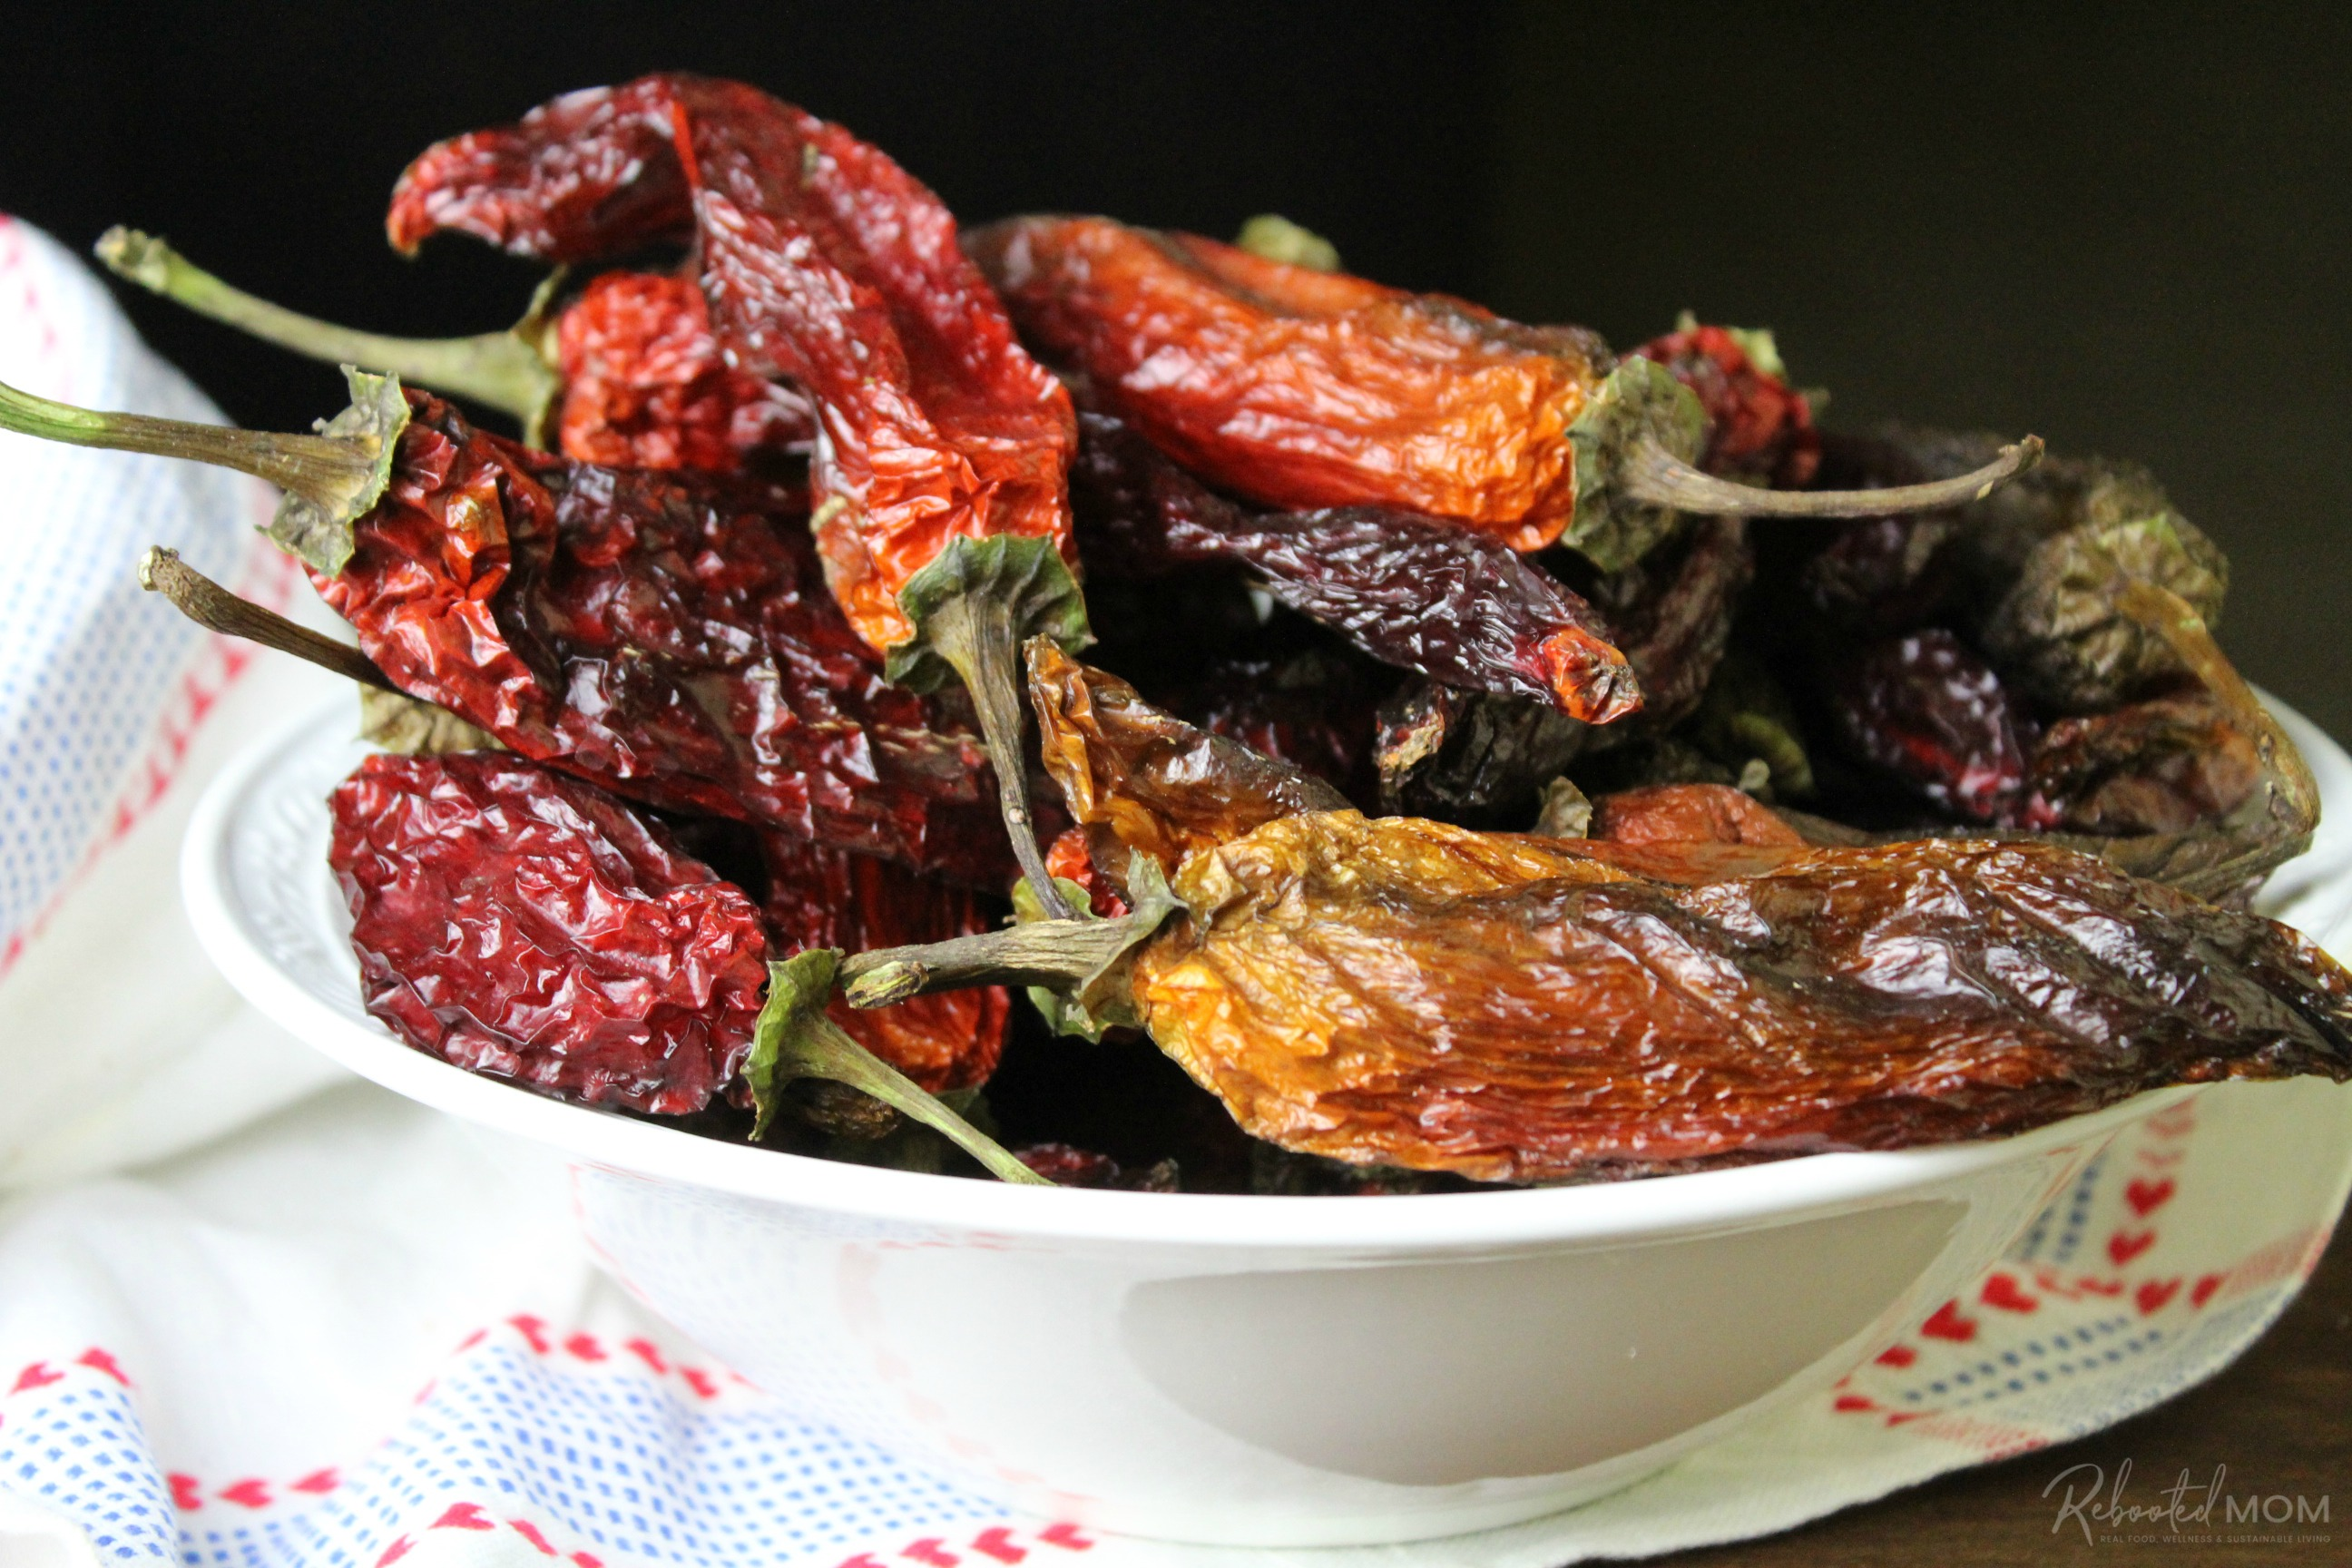 Dried whole hot peppers